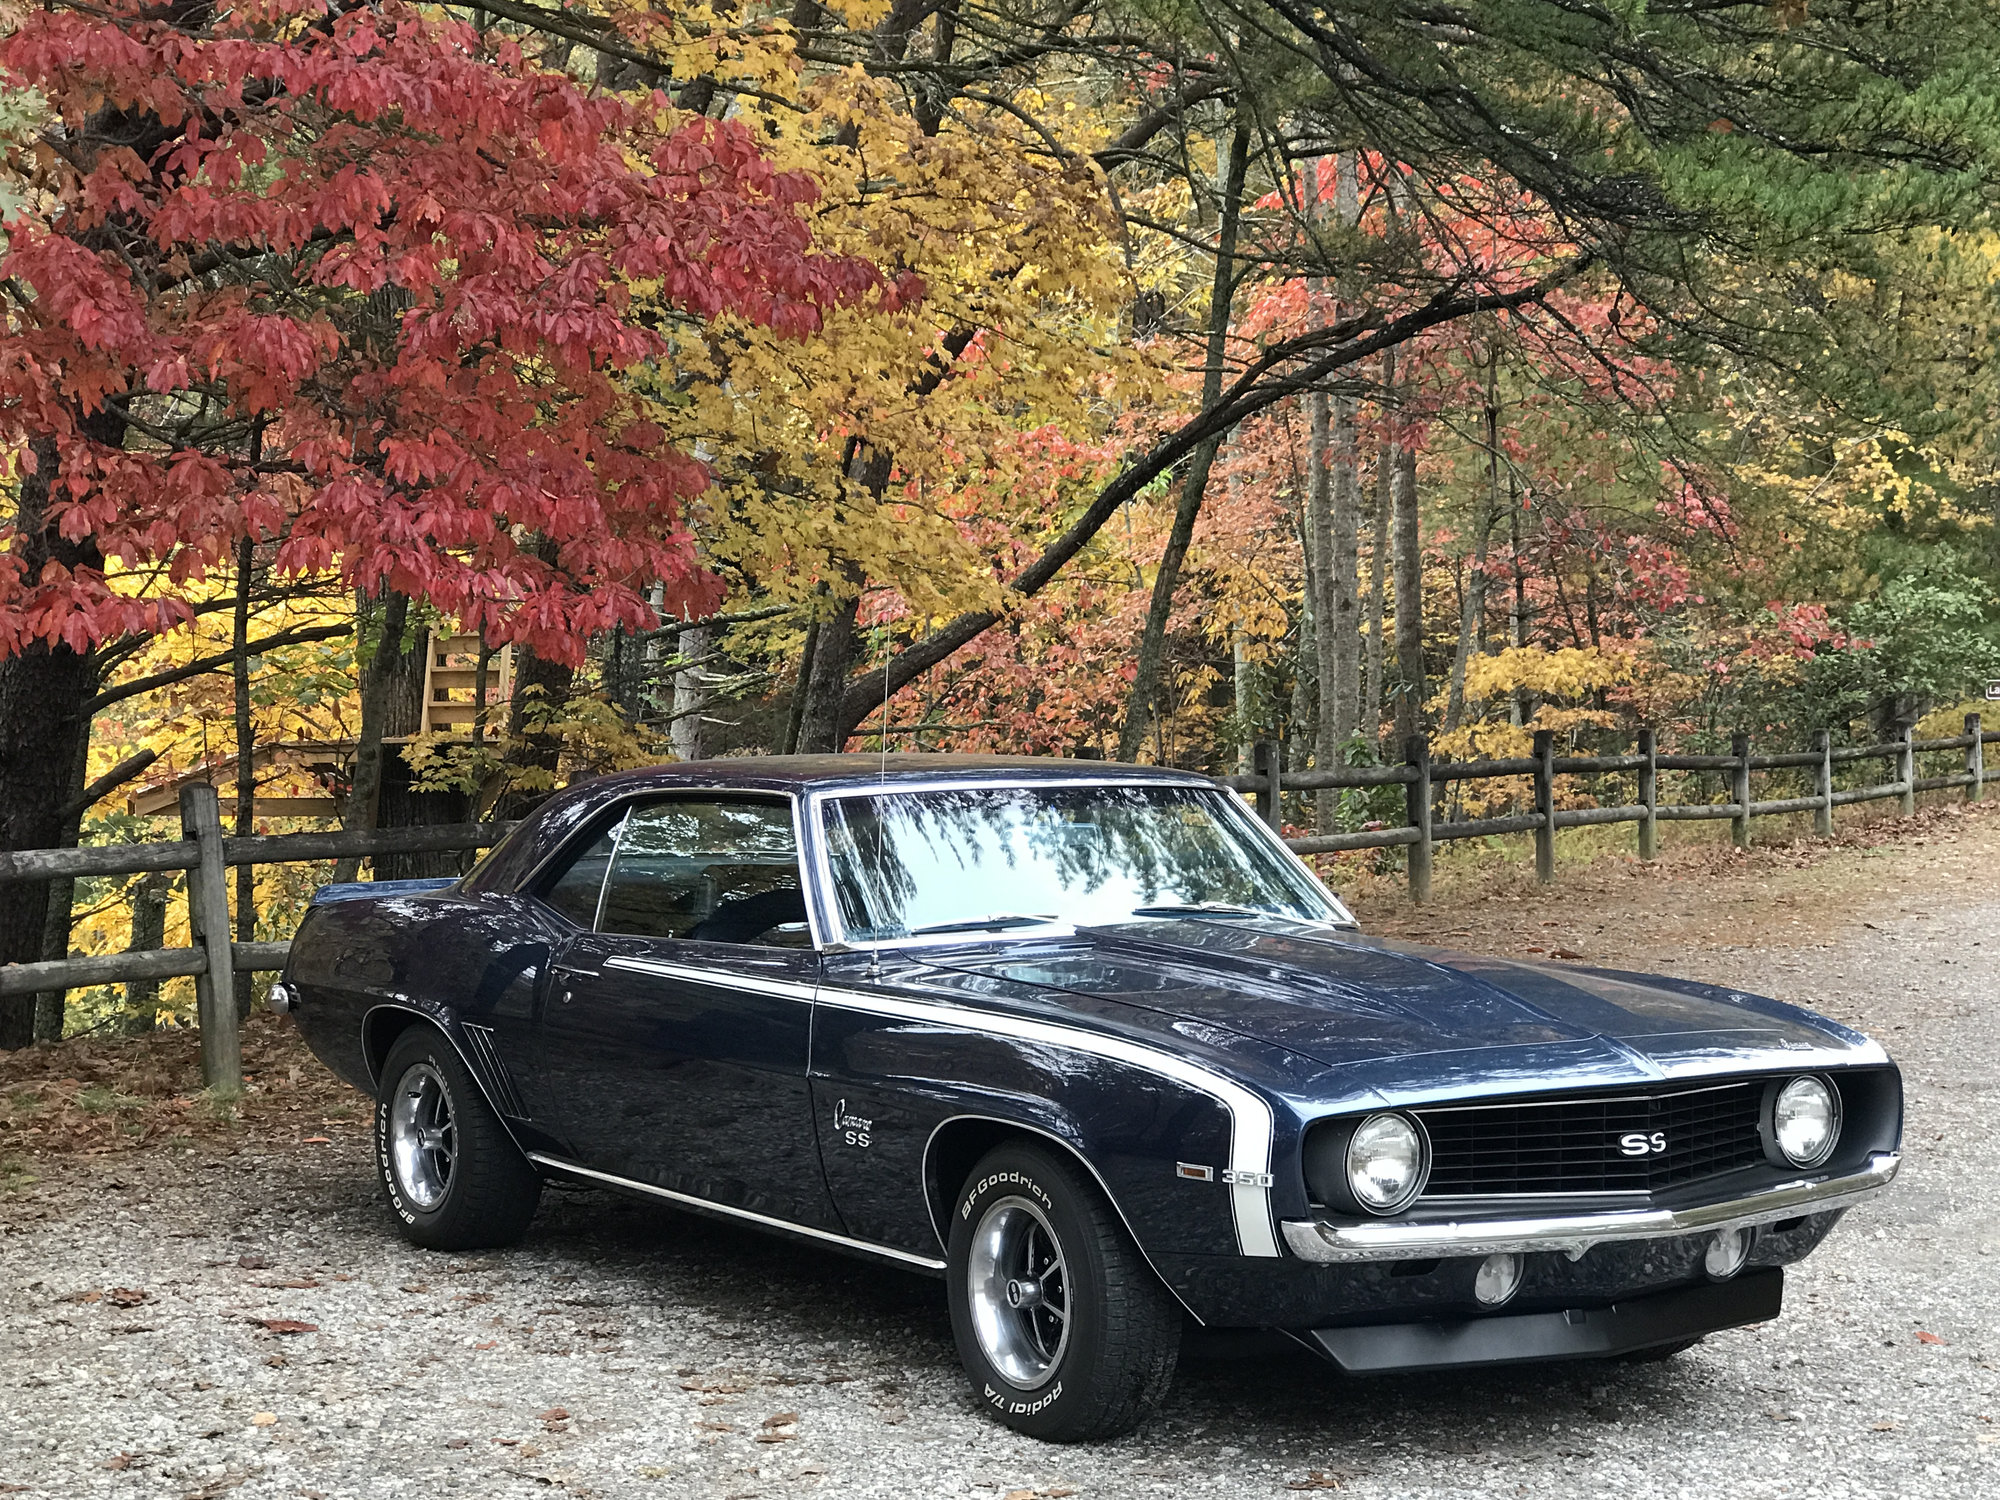 What muscle car would you buy? - Page 4 — Big Green Egg - EGGhead ...